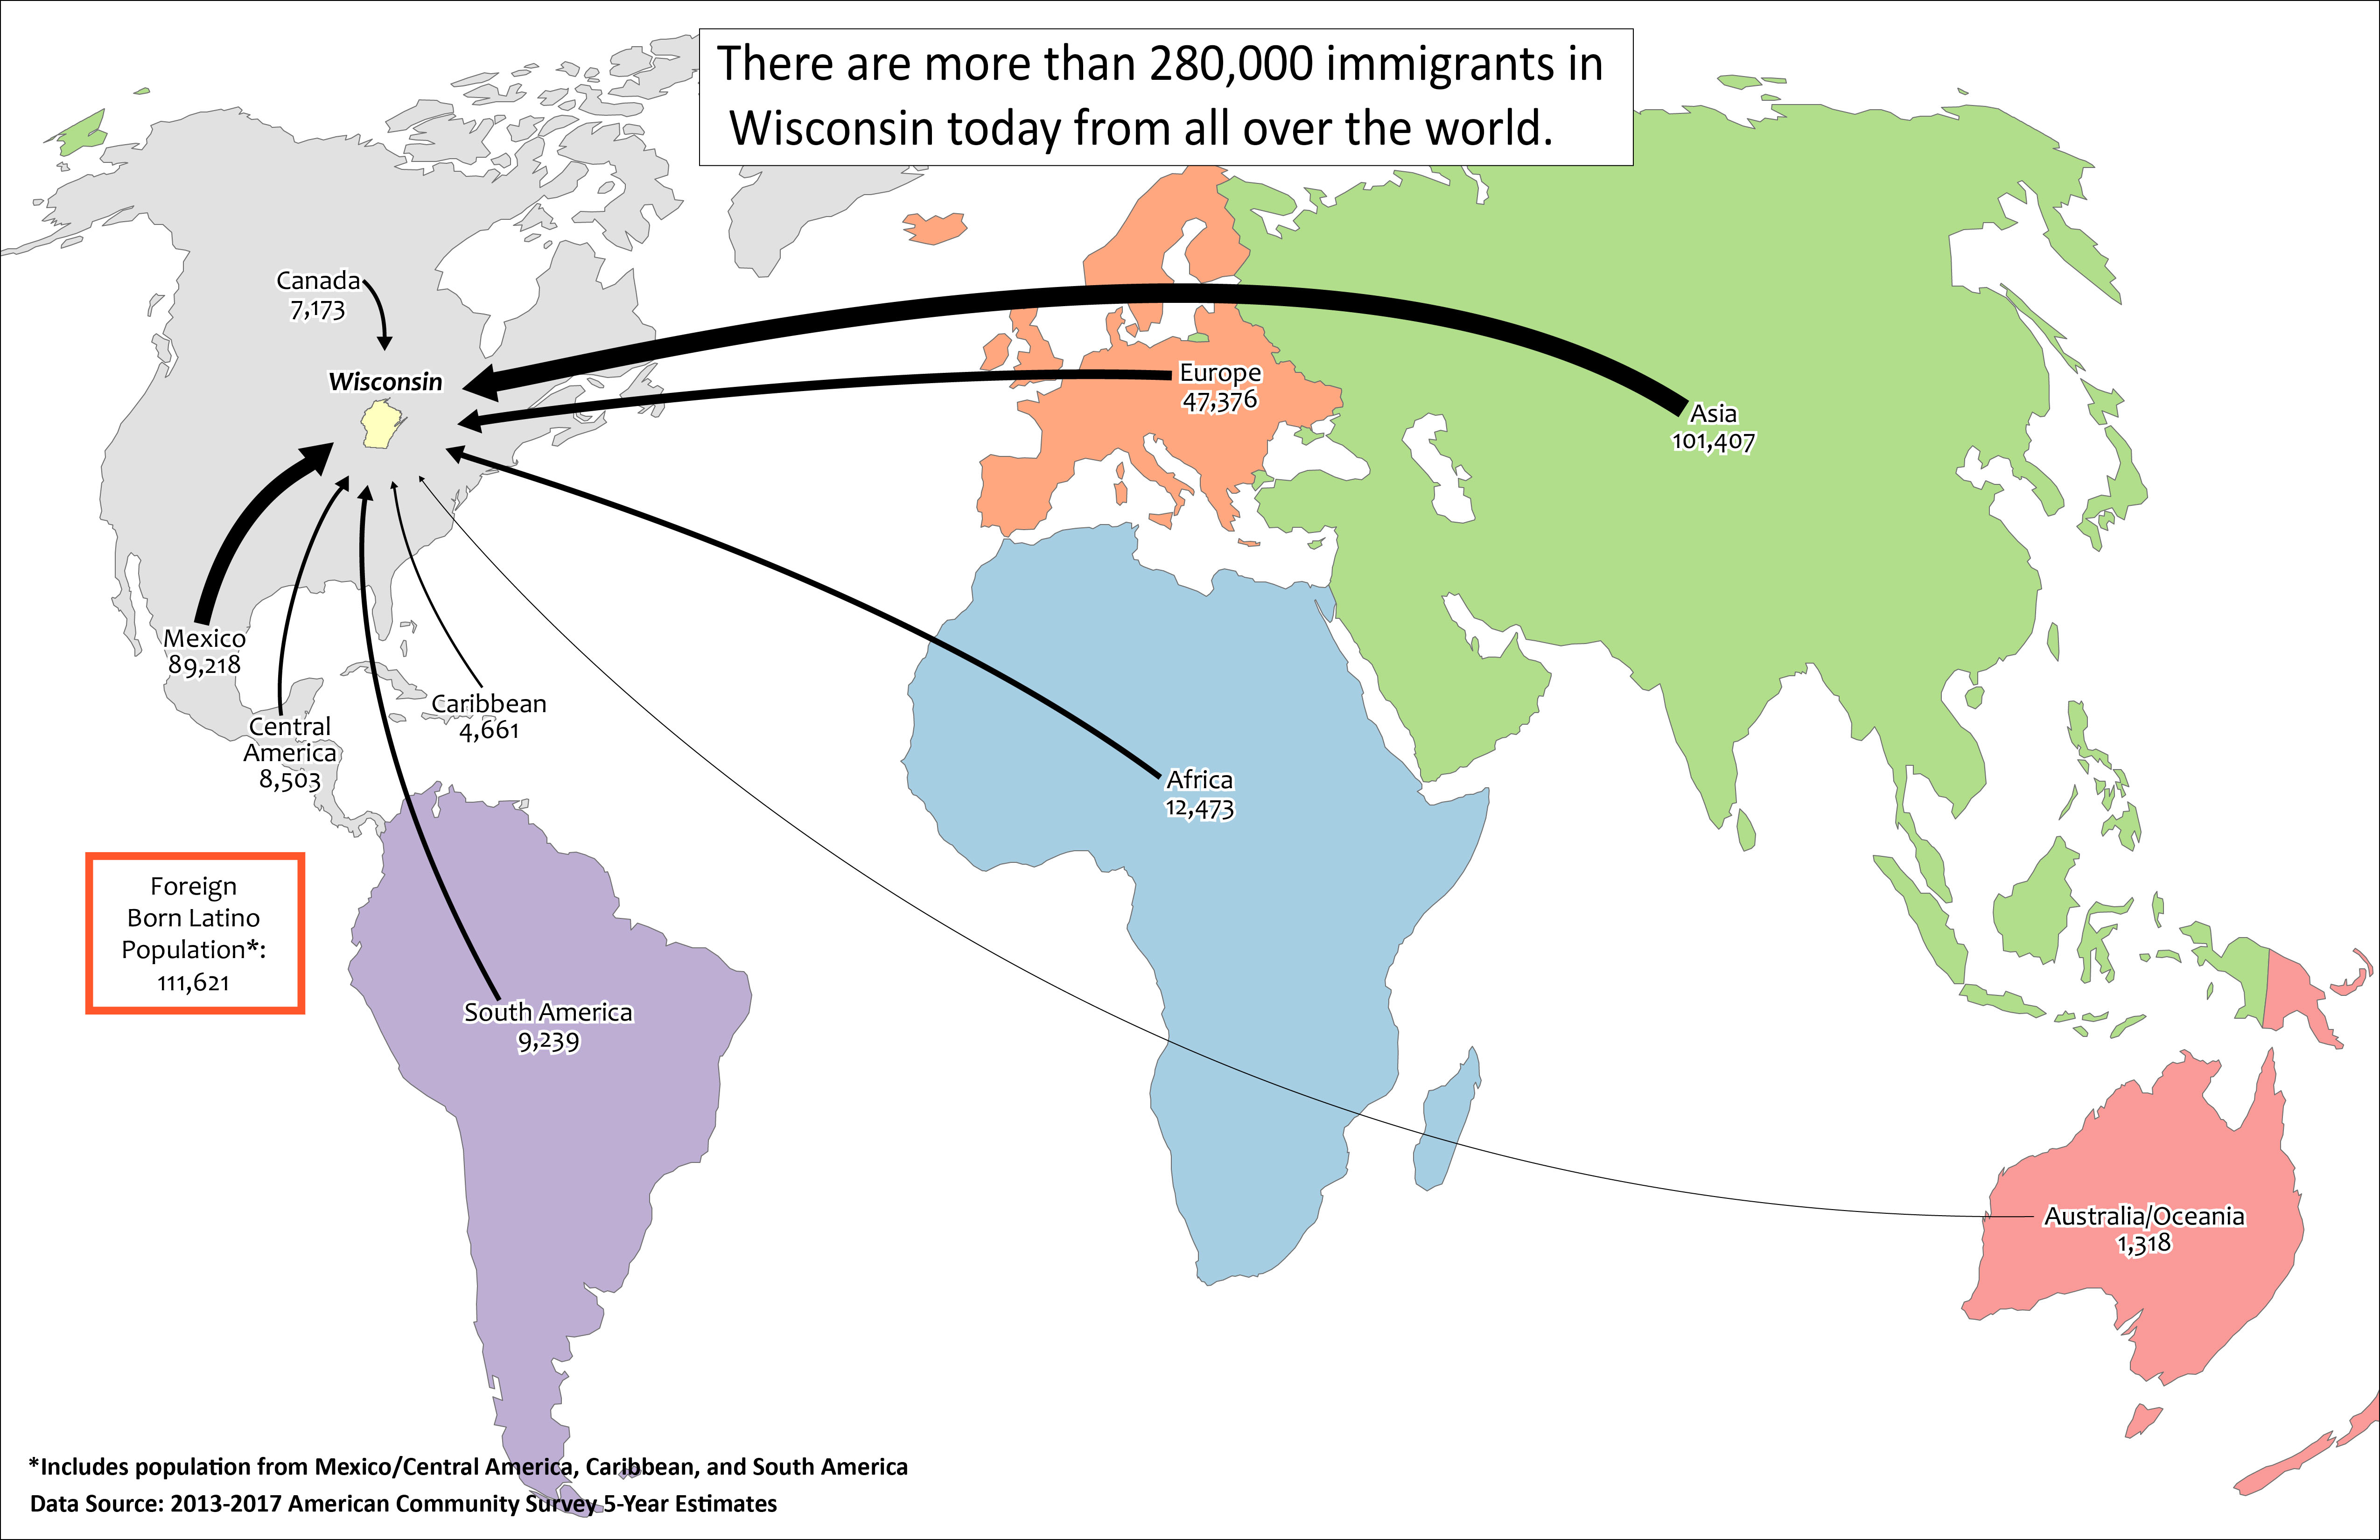 Global Migration to Wisconsin